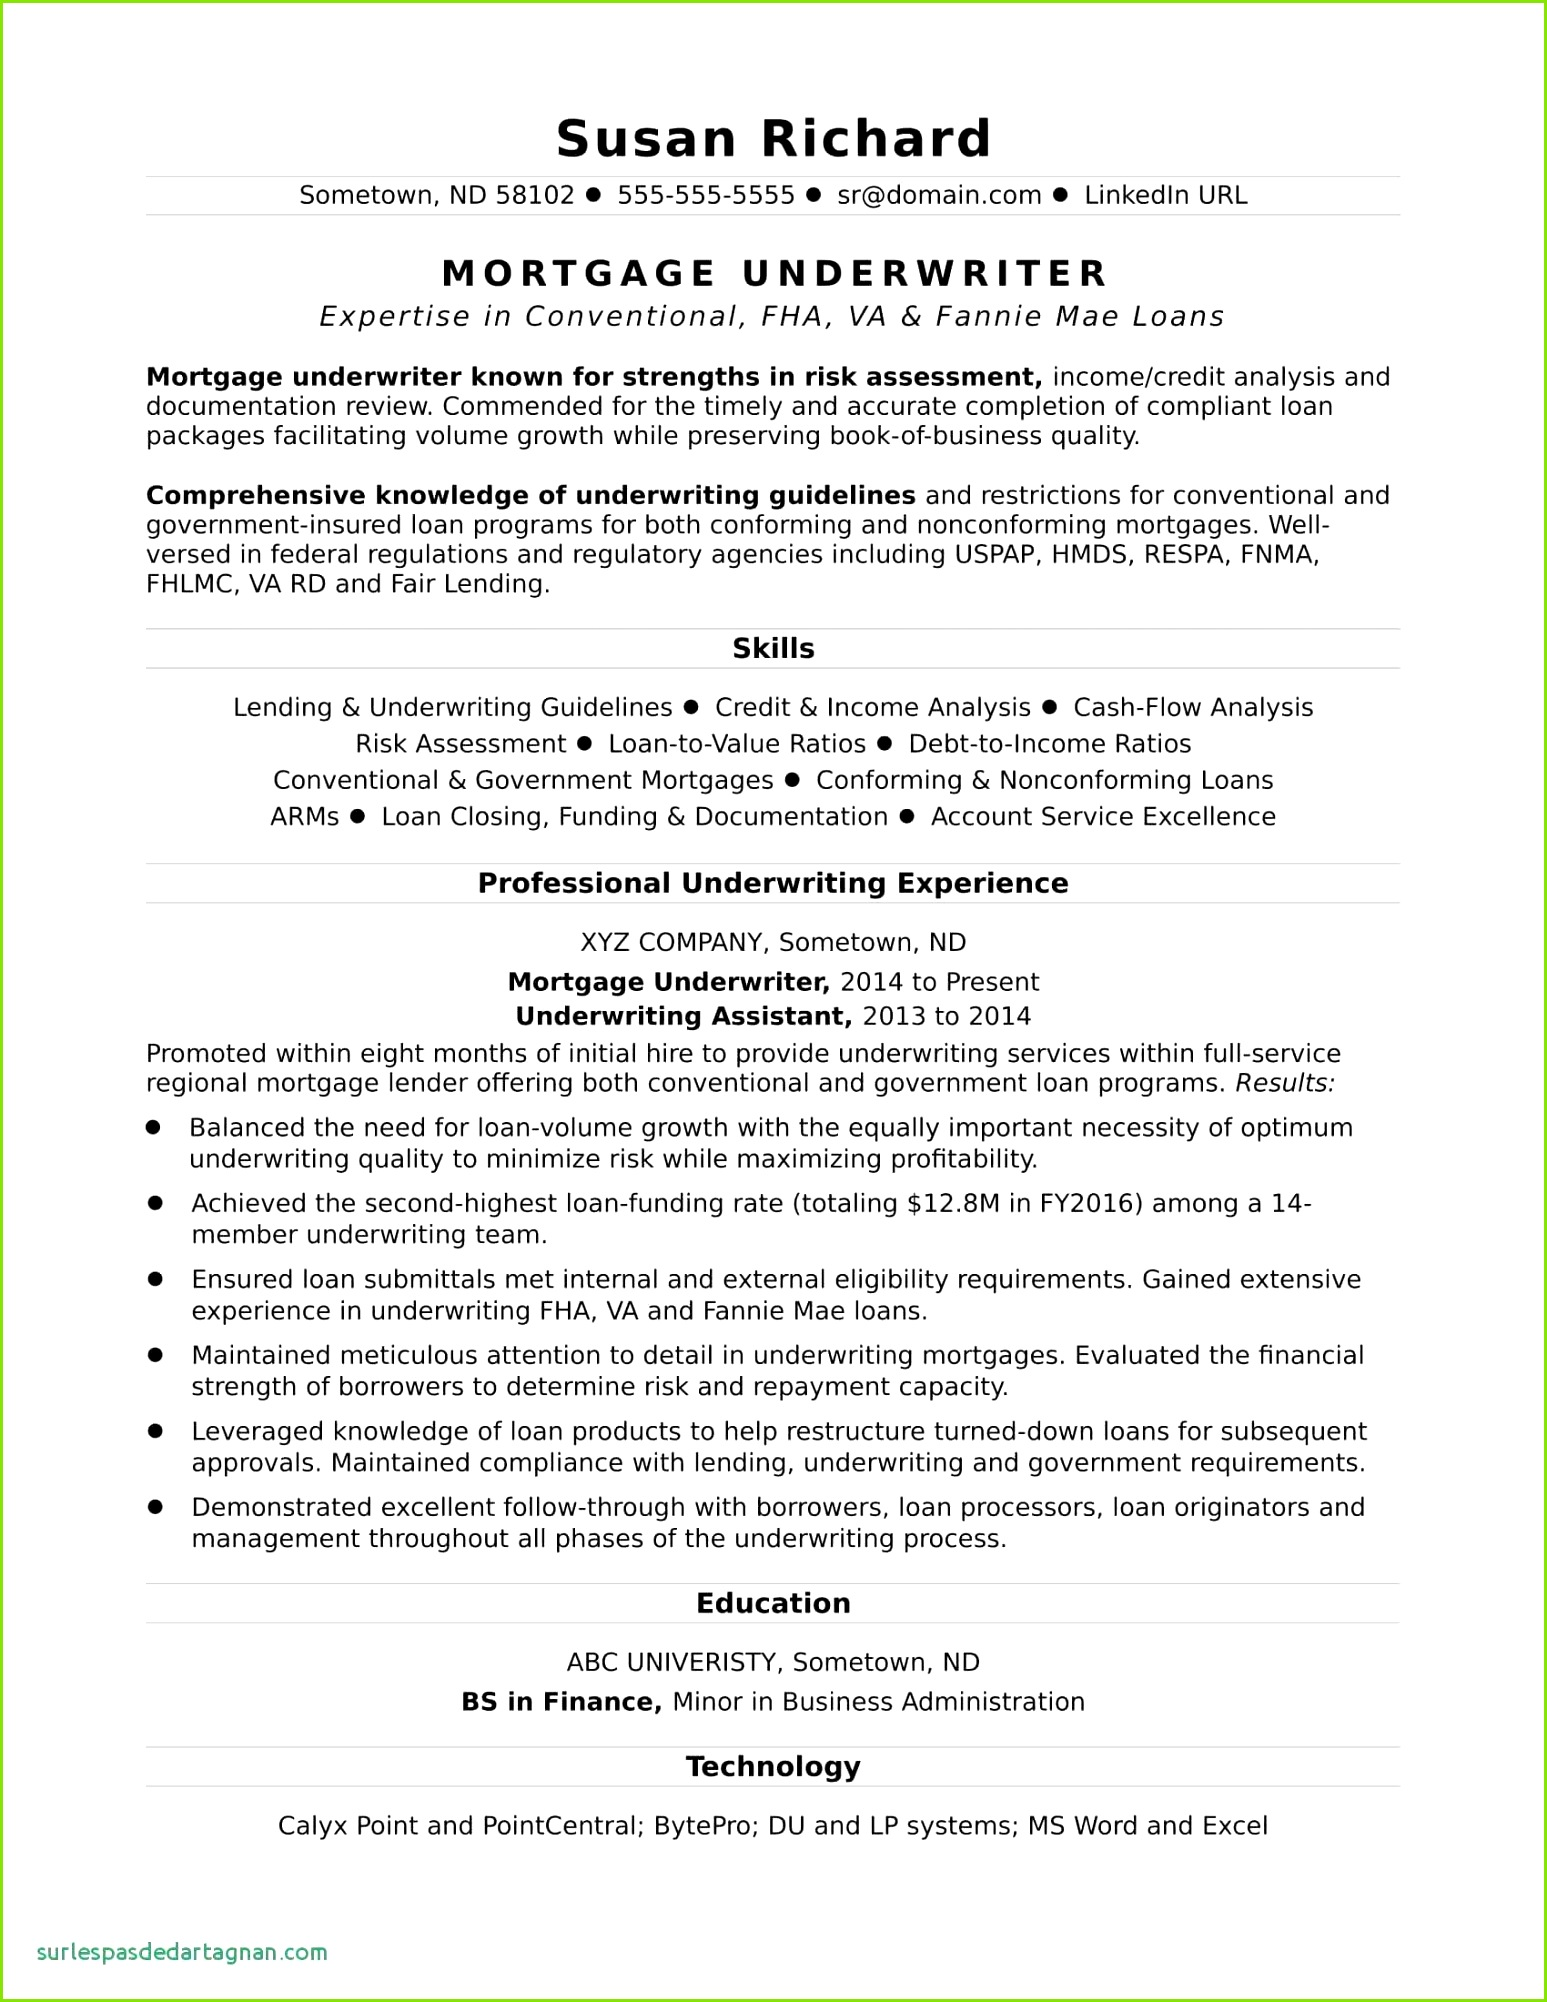 Resume Template Website Save Detailed Resume Template Luxury Signs Templates 2018 Rfp Template 0d Sample